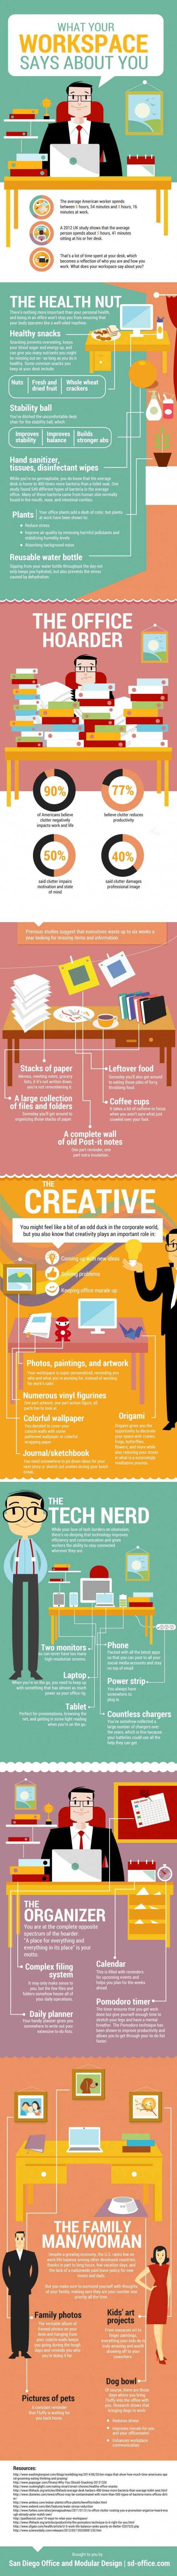 What Your Workspace Says About You